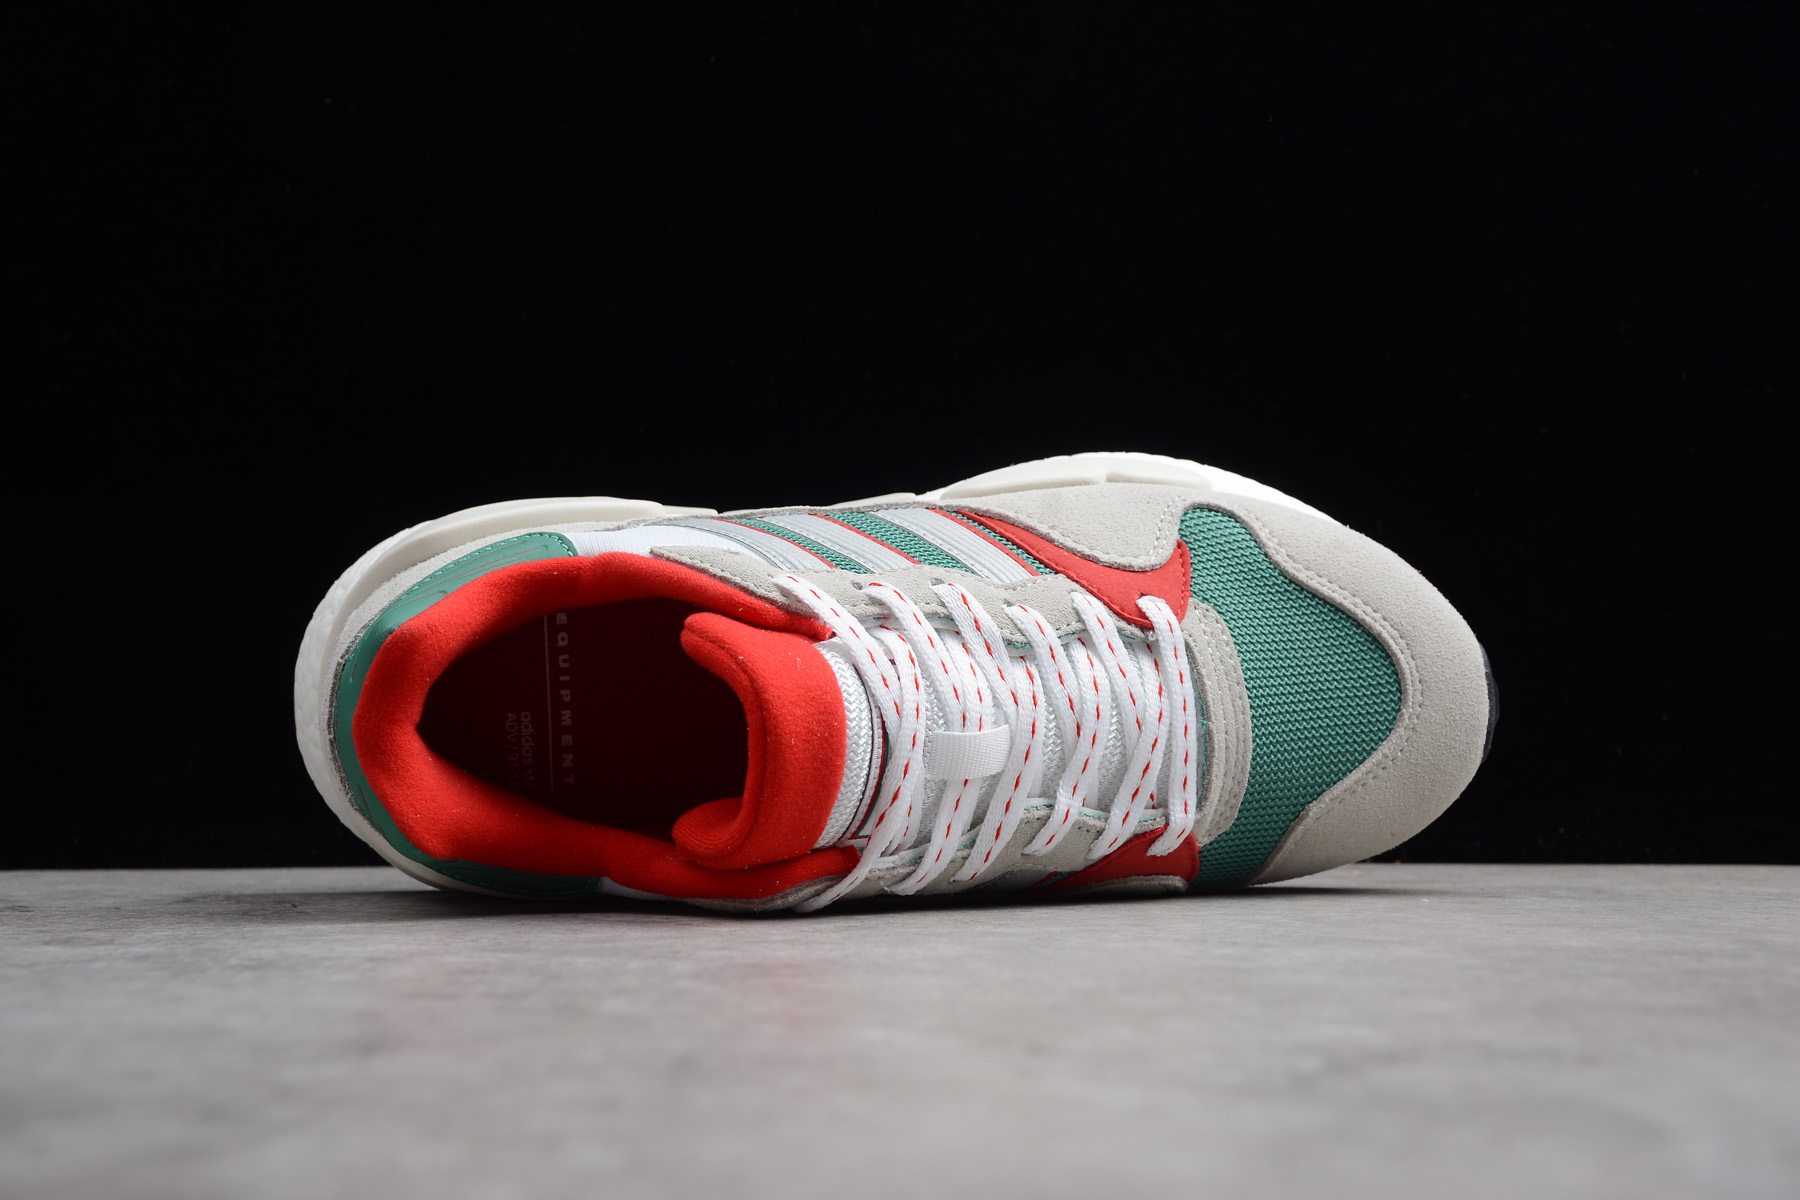 adidas EQT Support 91/18 Grey/Green-Red-White G26806